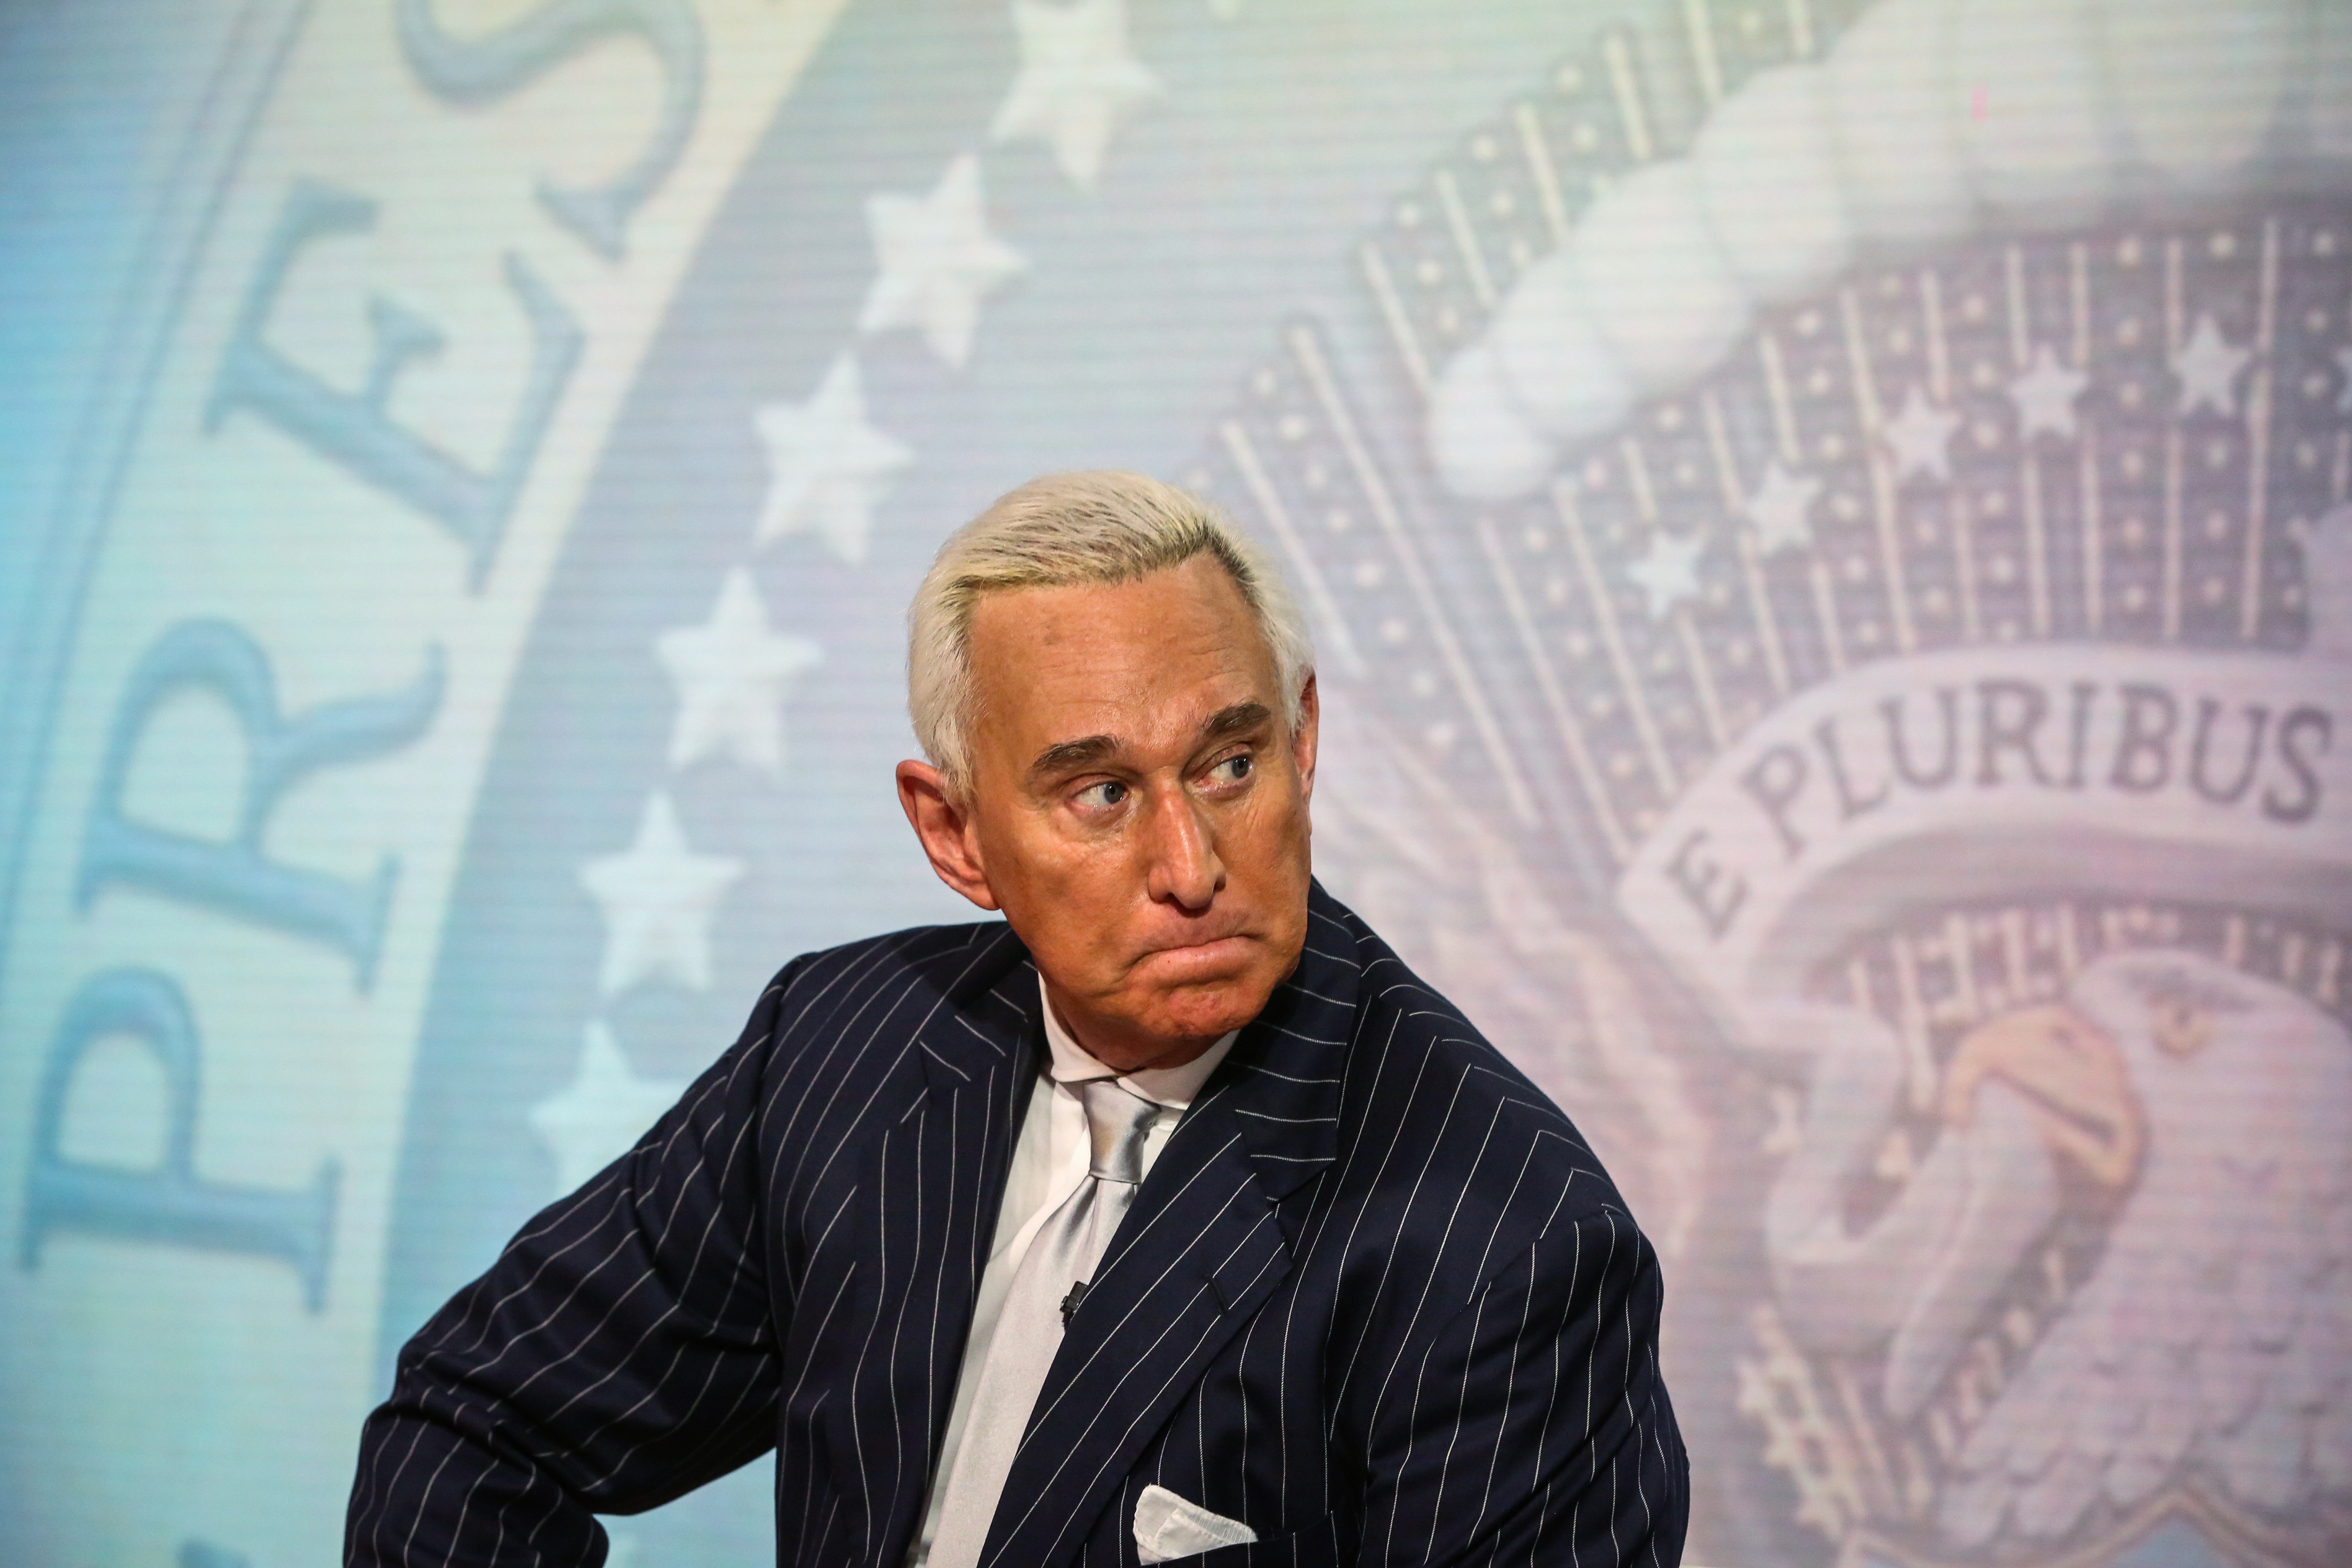 Roger Stone, former adviser to Donald Trump's presidential campaign, in New York on May 12, 2017.